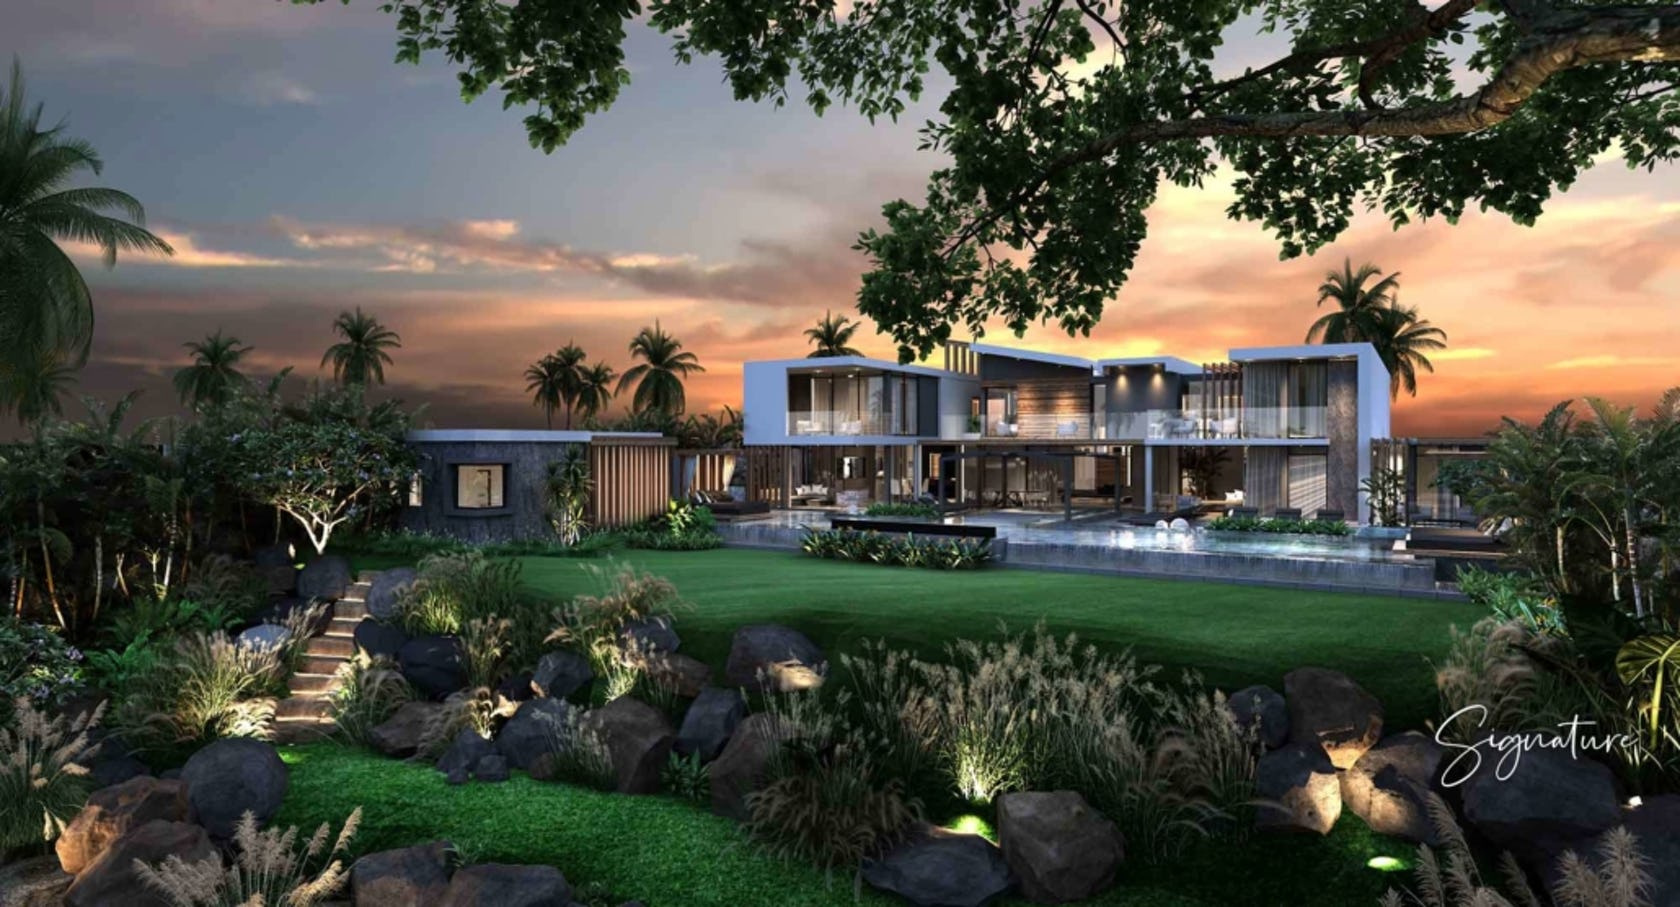 Cap Marina, a new place to live in Mauritius